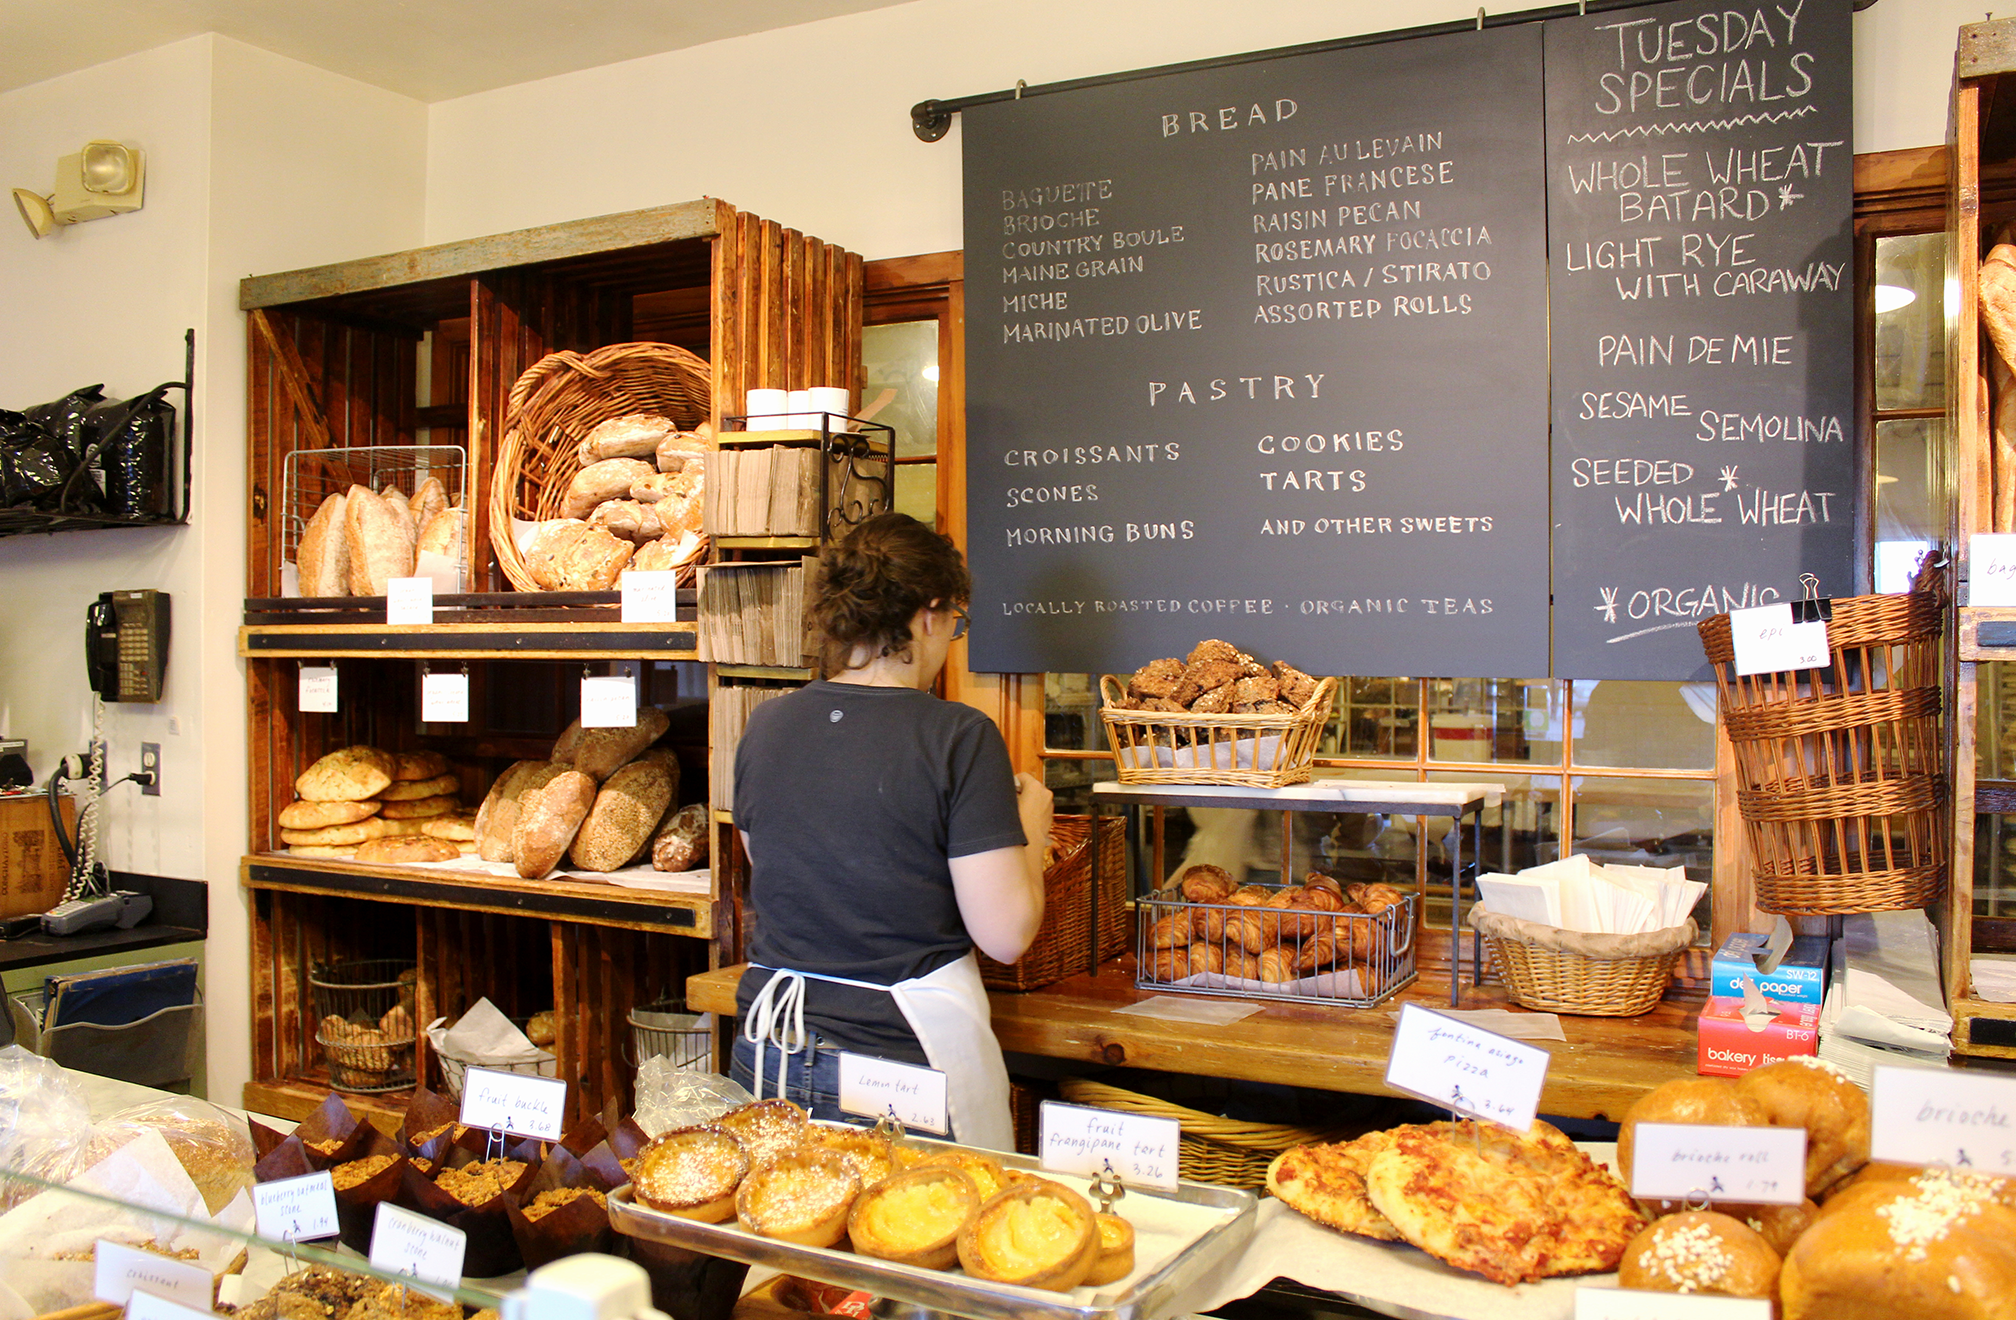 Destination Baking Company in Chenery Street is a cozy bakeshop known for great breakfast and coffee.